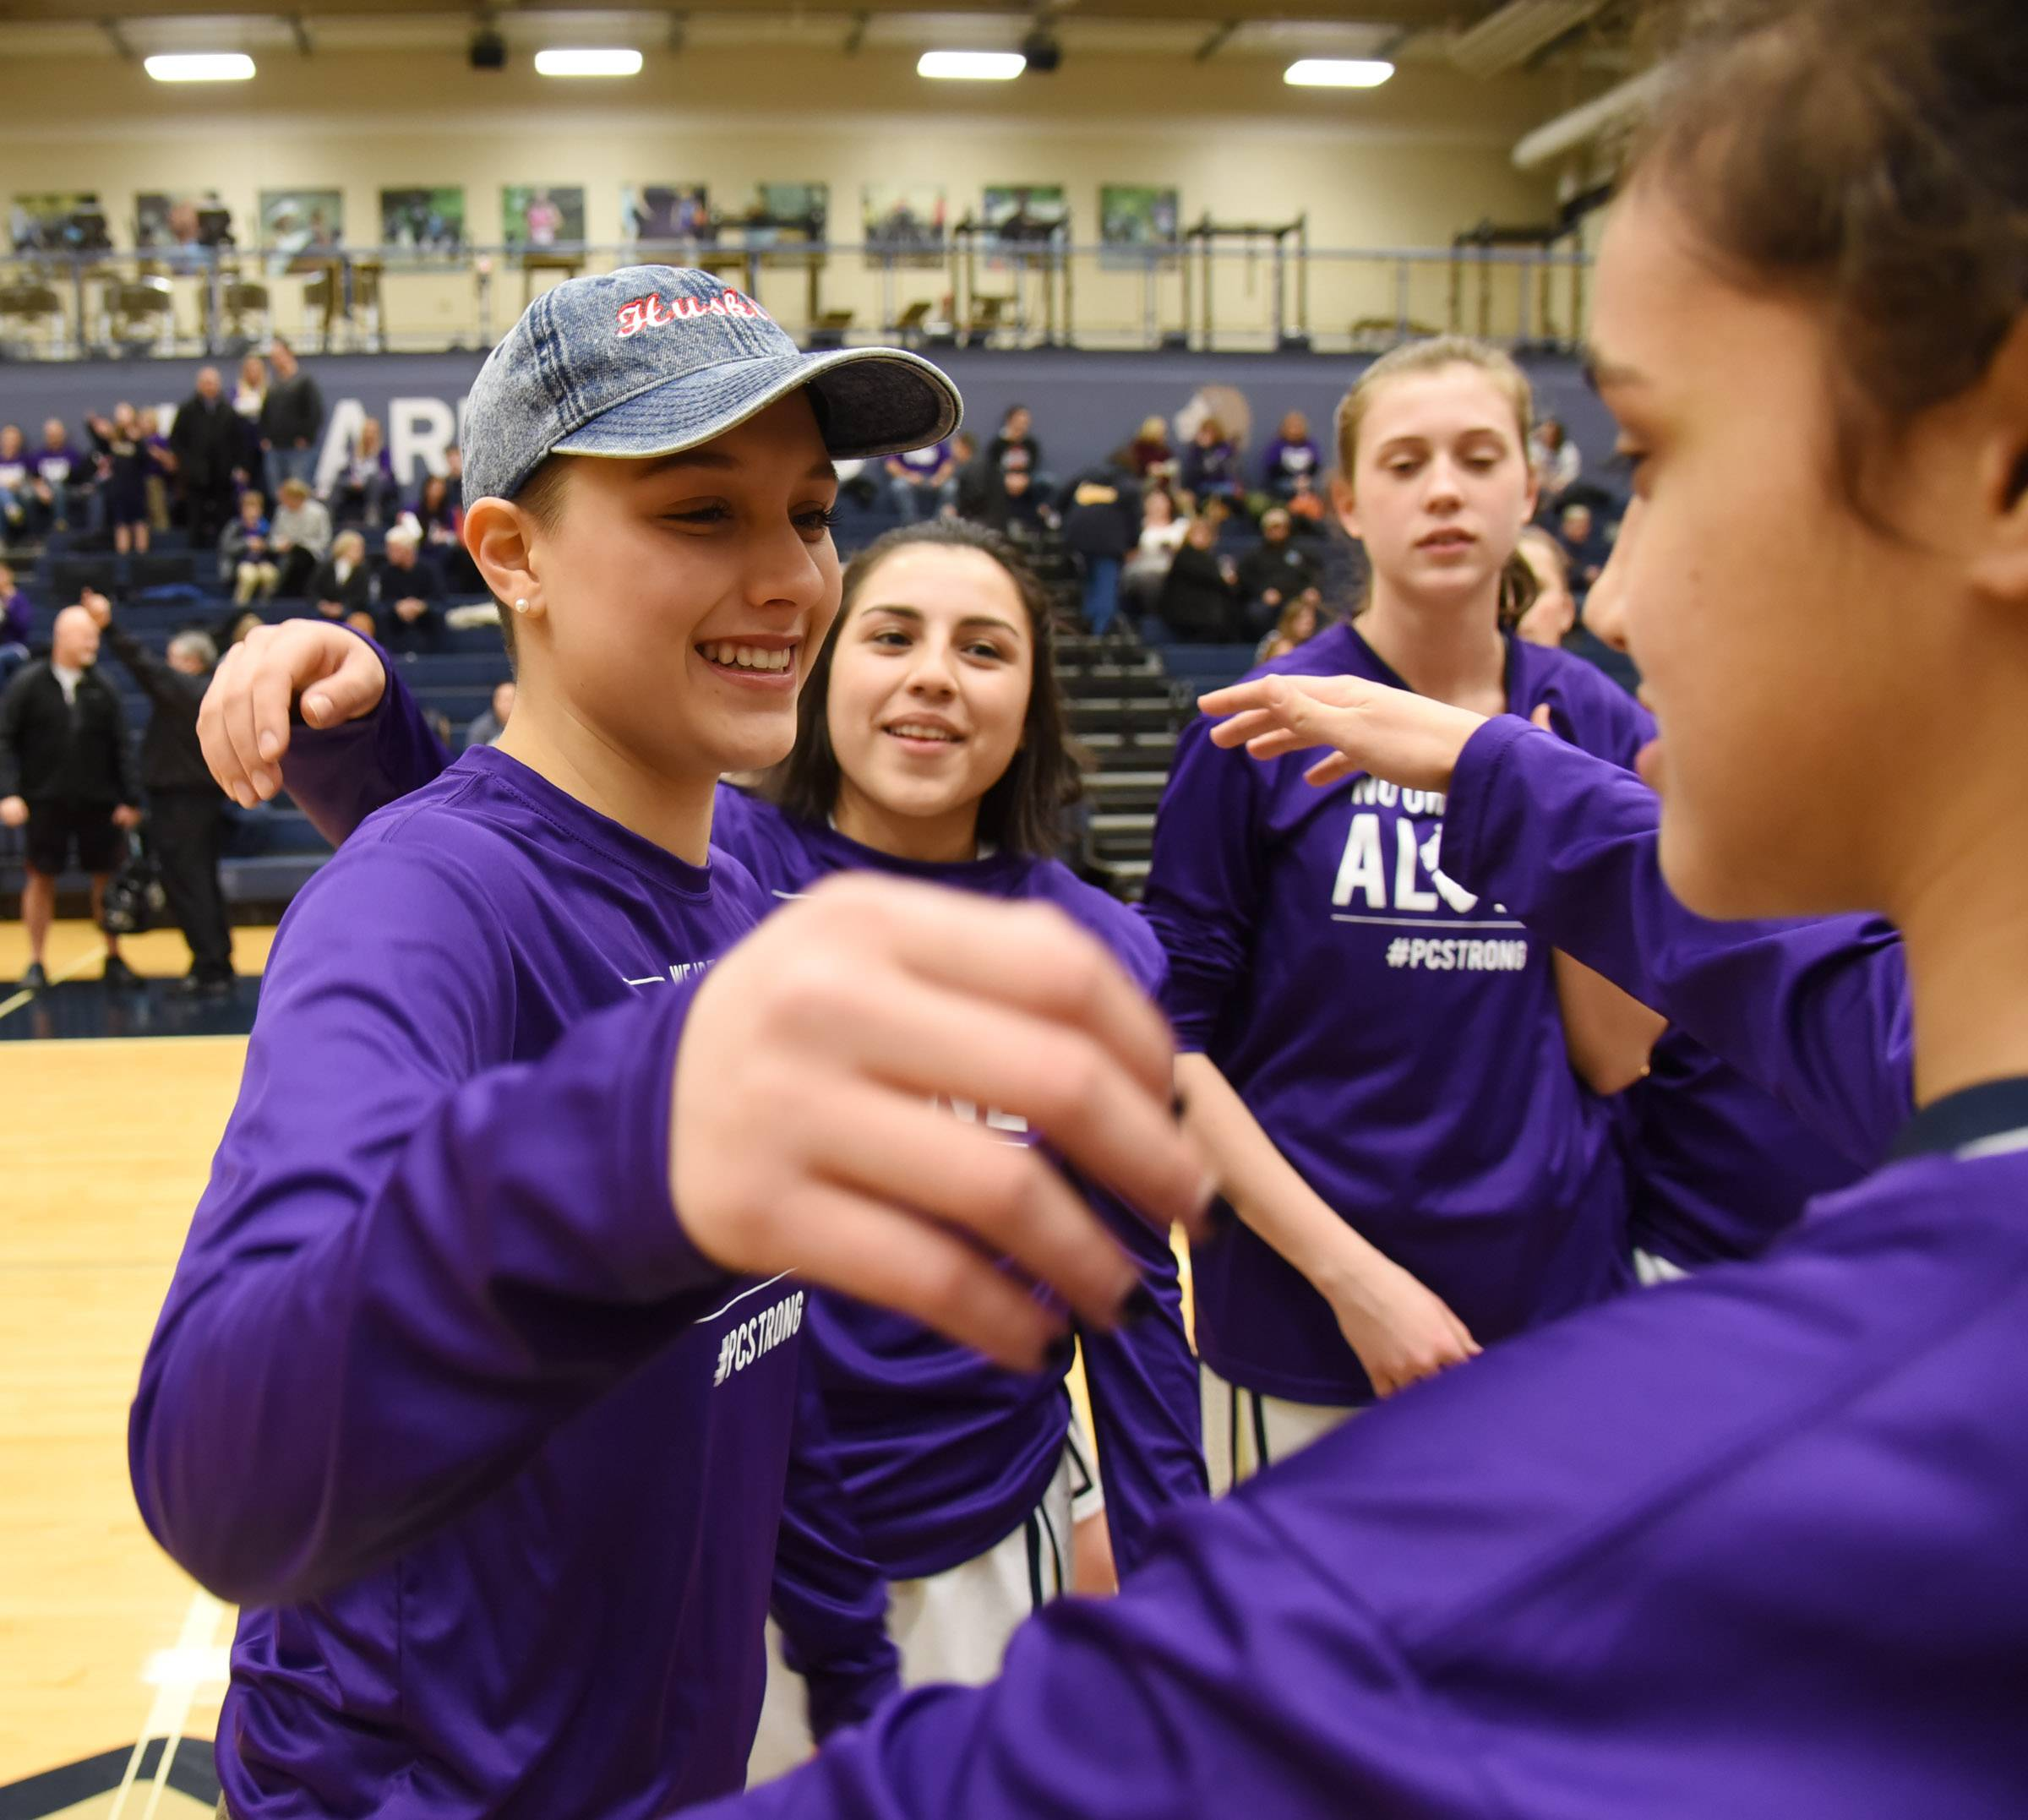 Harvest Christian Academy alumni Paulina Castro is greeted by her former teammates before the girls basketball game Friday in Elgin. She is now a NIU freshman who is battling Hodgkin's lymphoma.